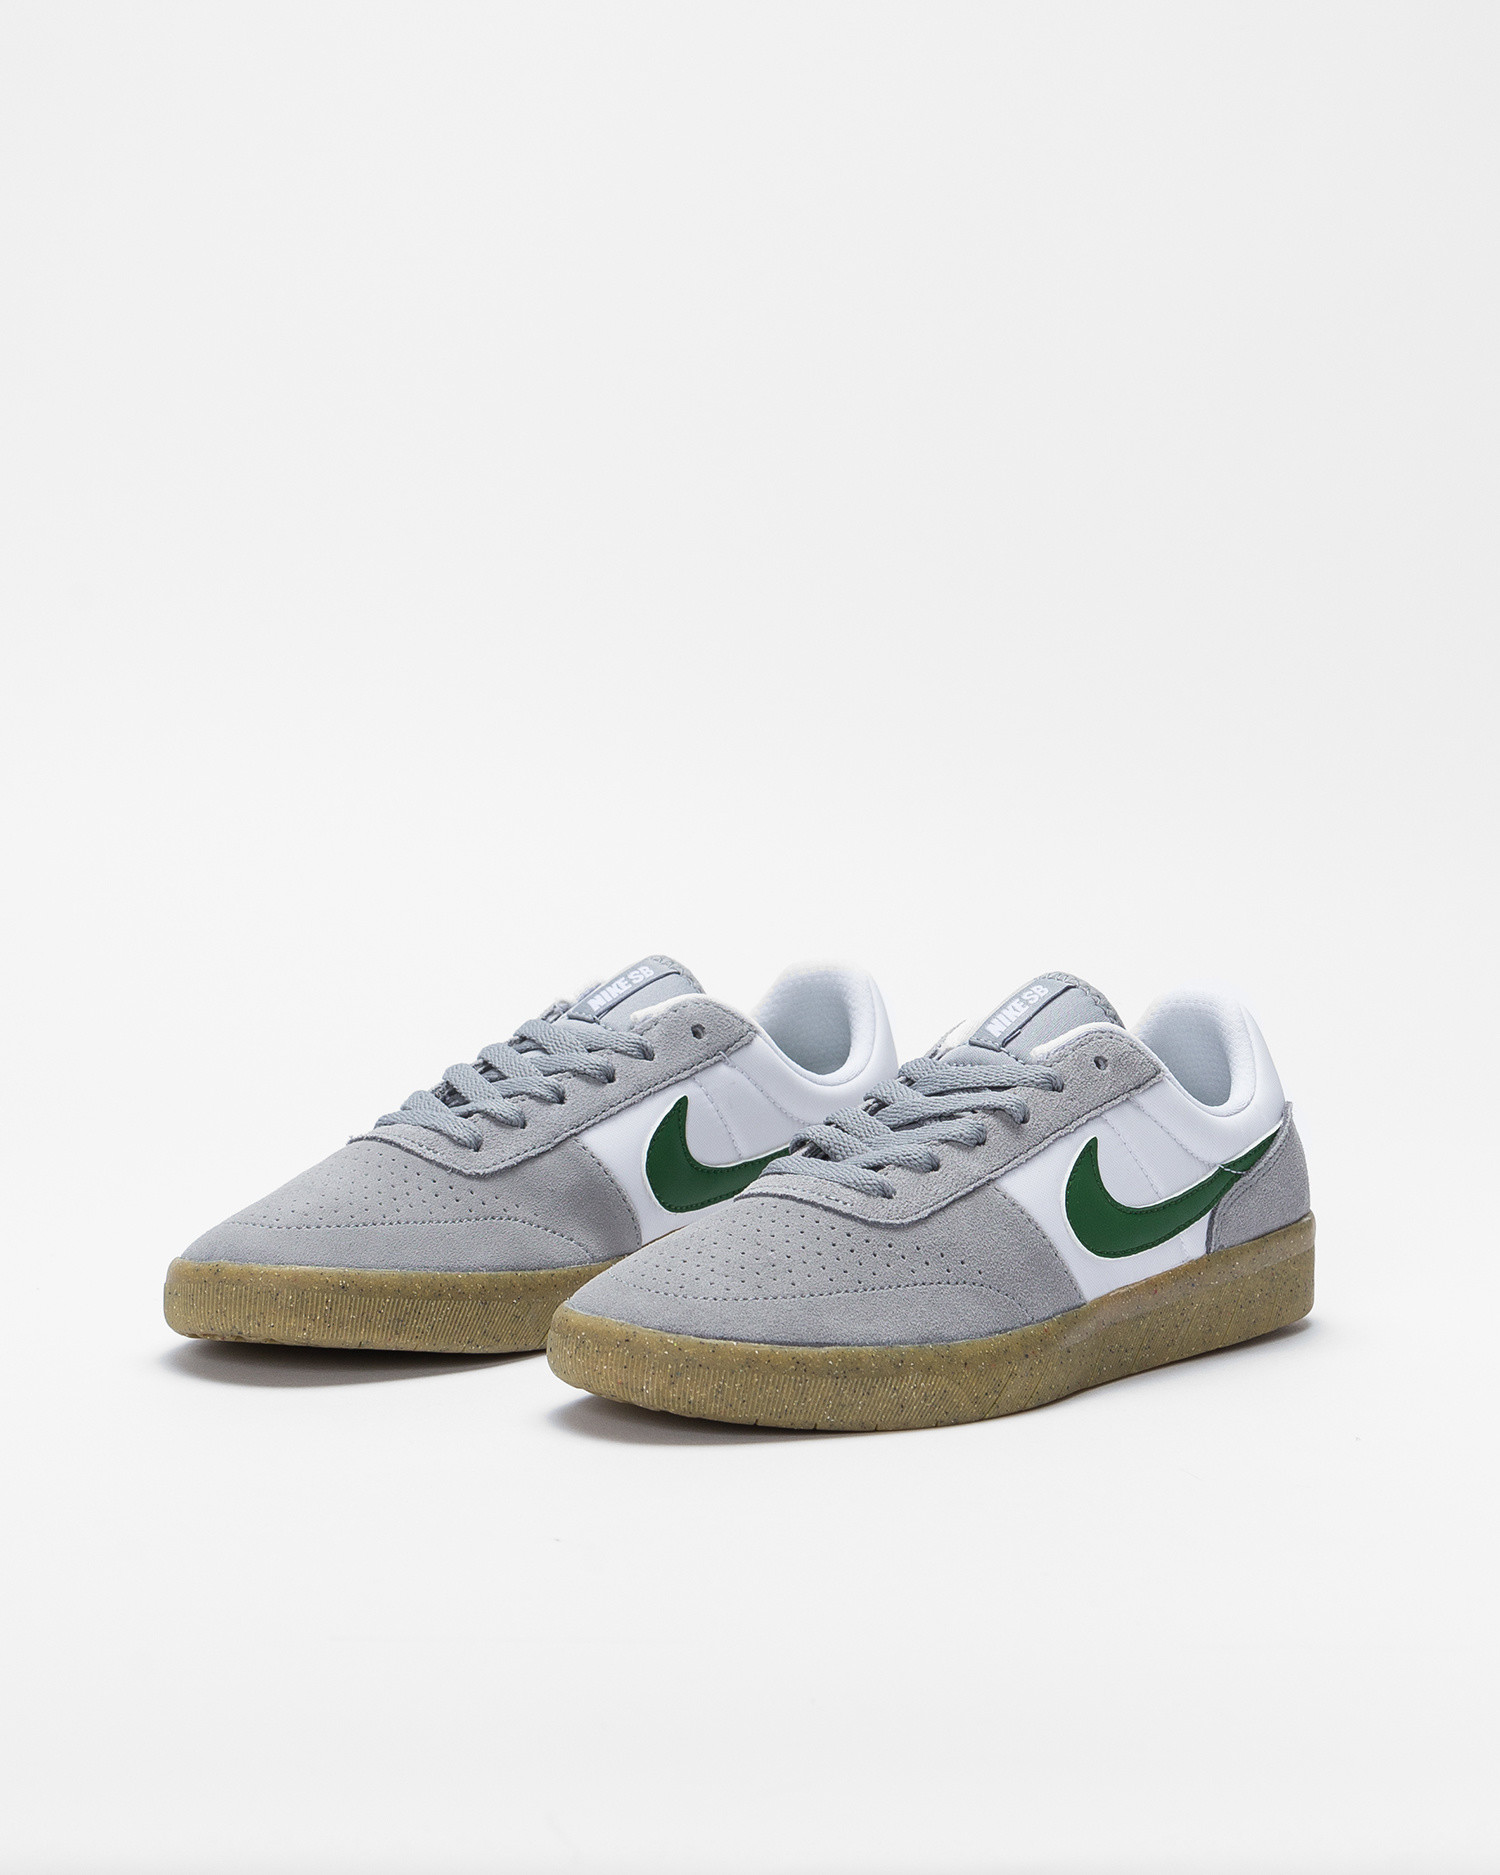 Nike SB team classic Particle grey/forest green-particle grey